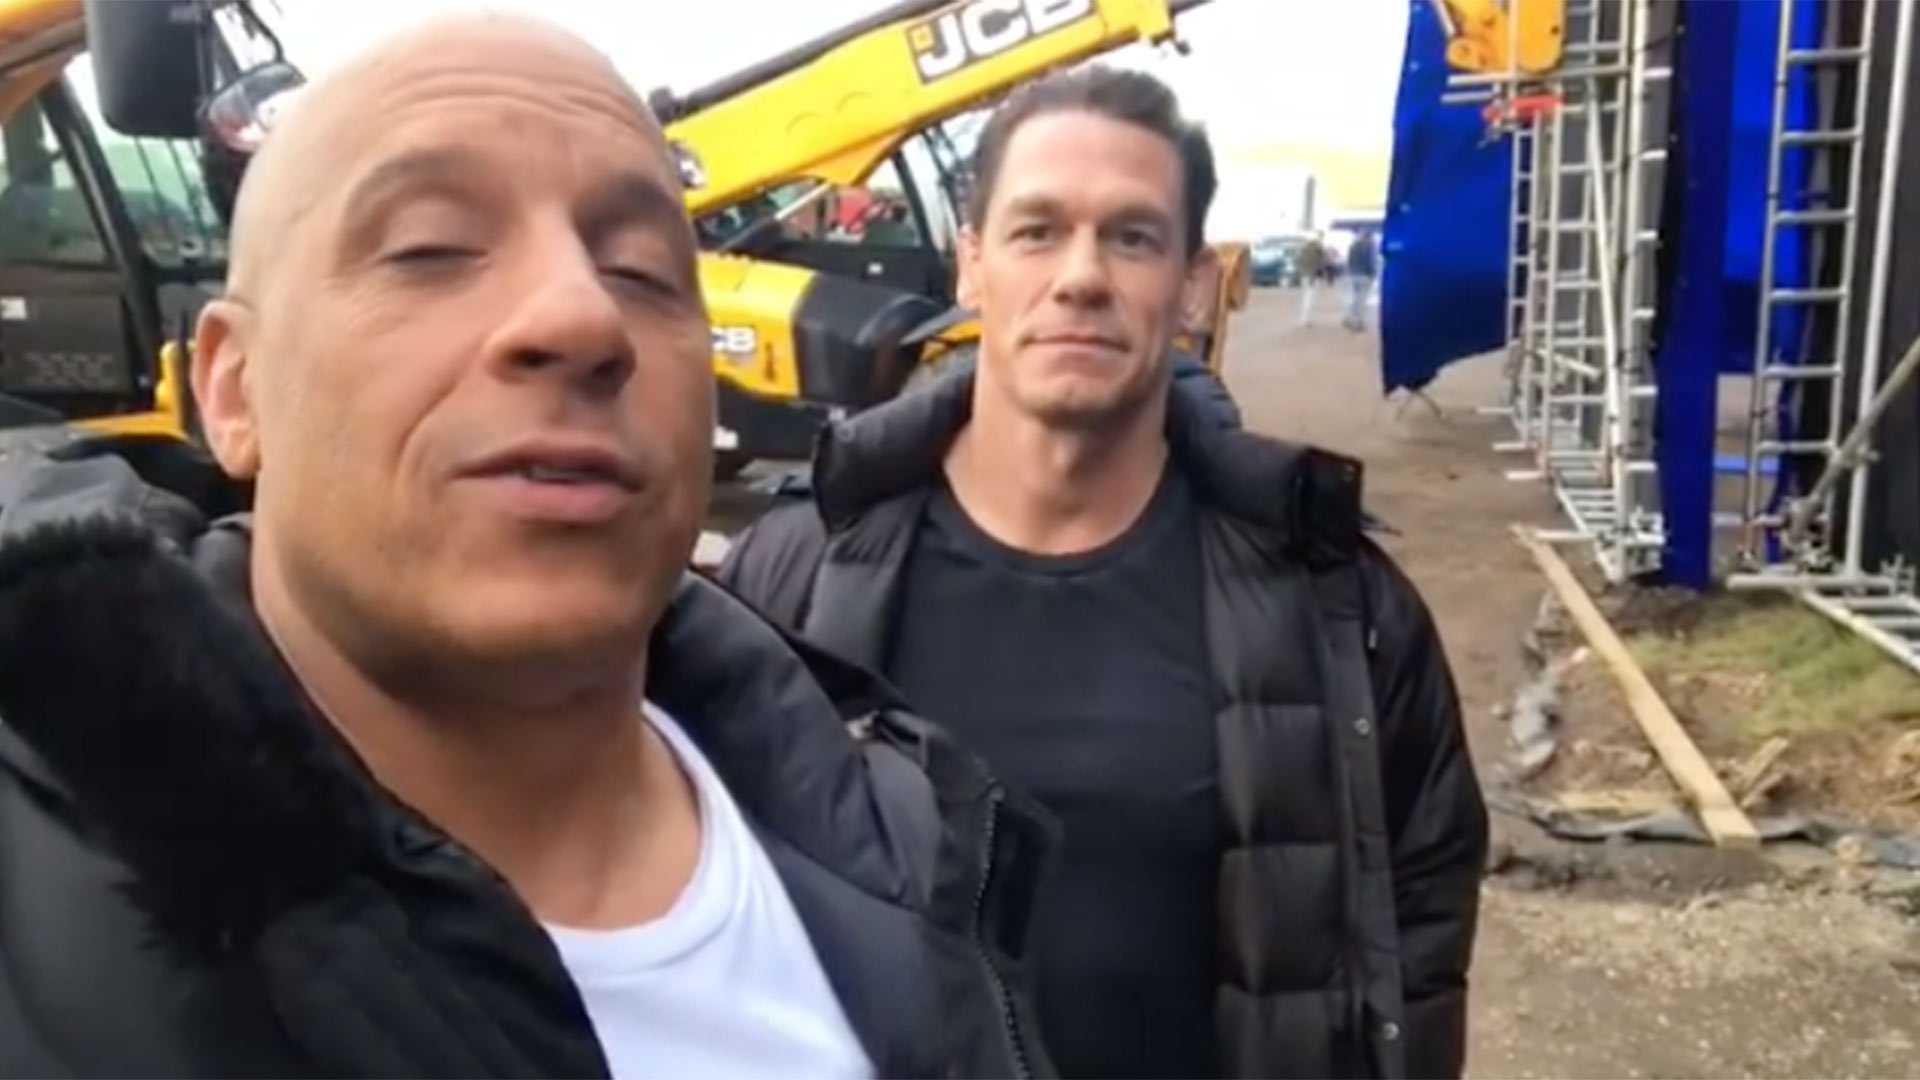 Vin Diesel and John Cena